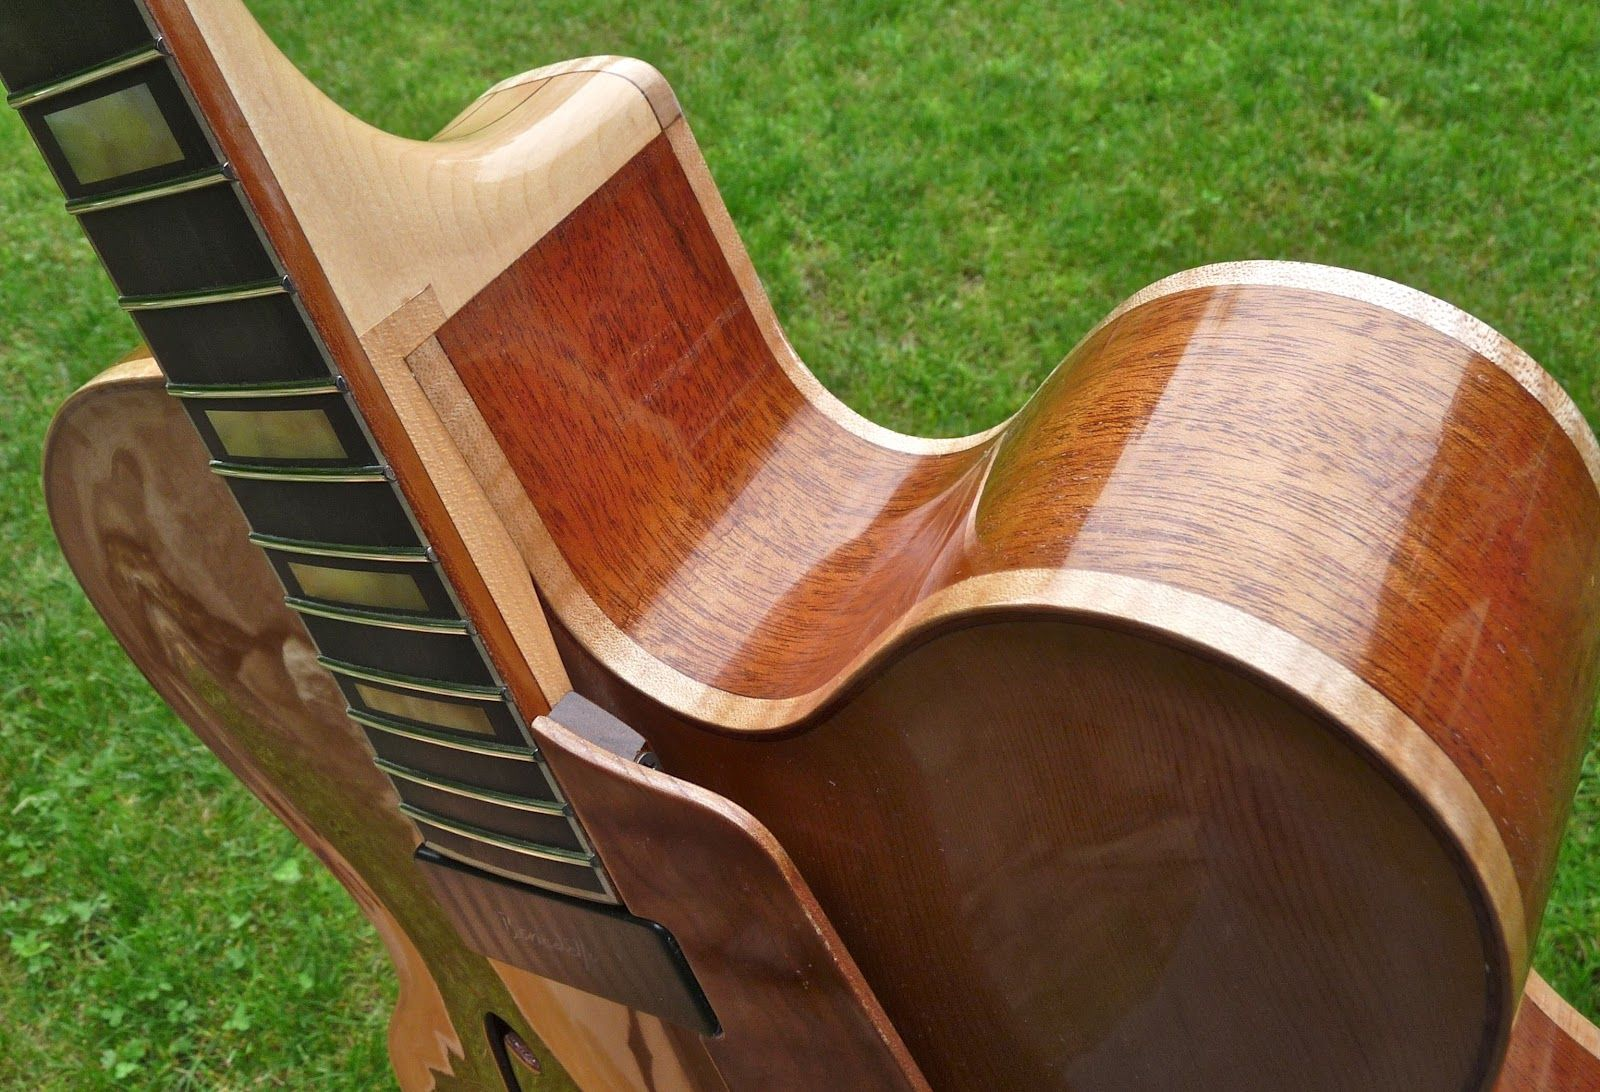 With the neck and body in one guitar-like object at last, it comes time to start finishing up - which means constructing and detailing th...